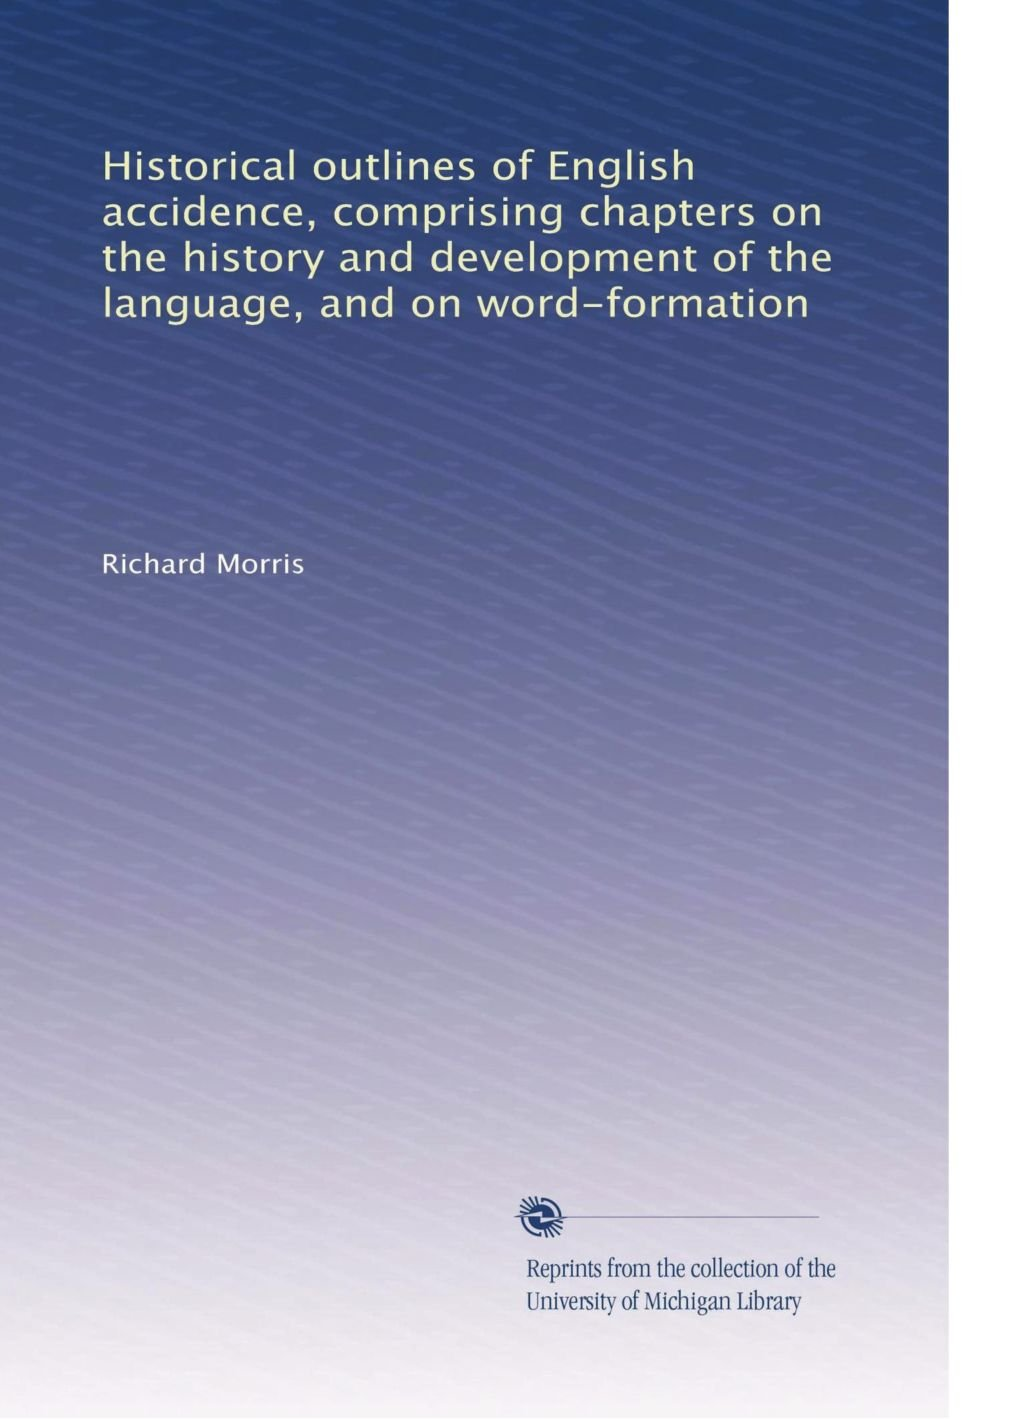 Historical outlines of English accidence, comprising chapters on the history and development of the language, and on word-formation by University of Michigan Library